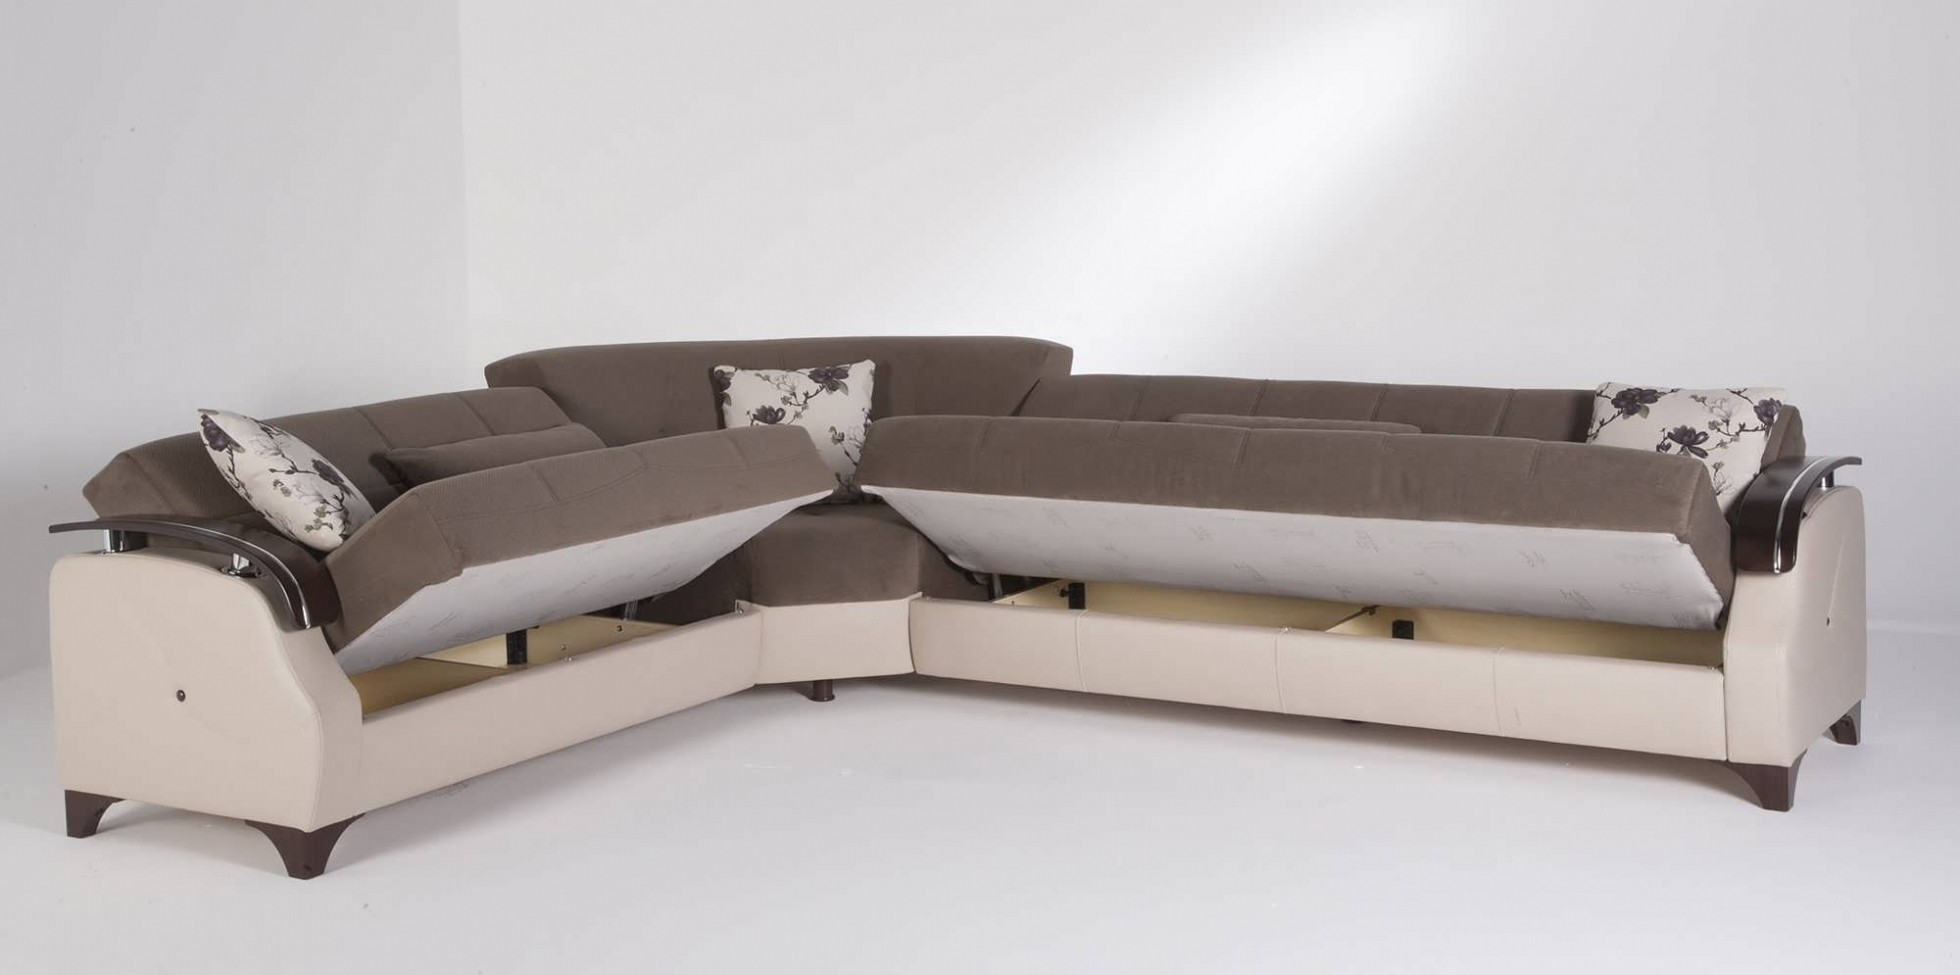 Most Popular Bedroom: Sofa : Sectional Couch With Pull Out Bed Sectional Sleeper Regarding Unique Sectional Sofas (View 17 of 20)